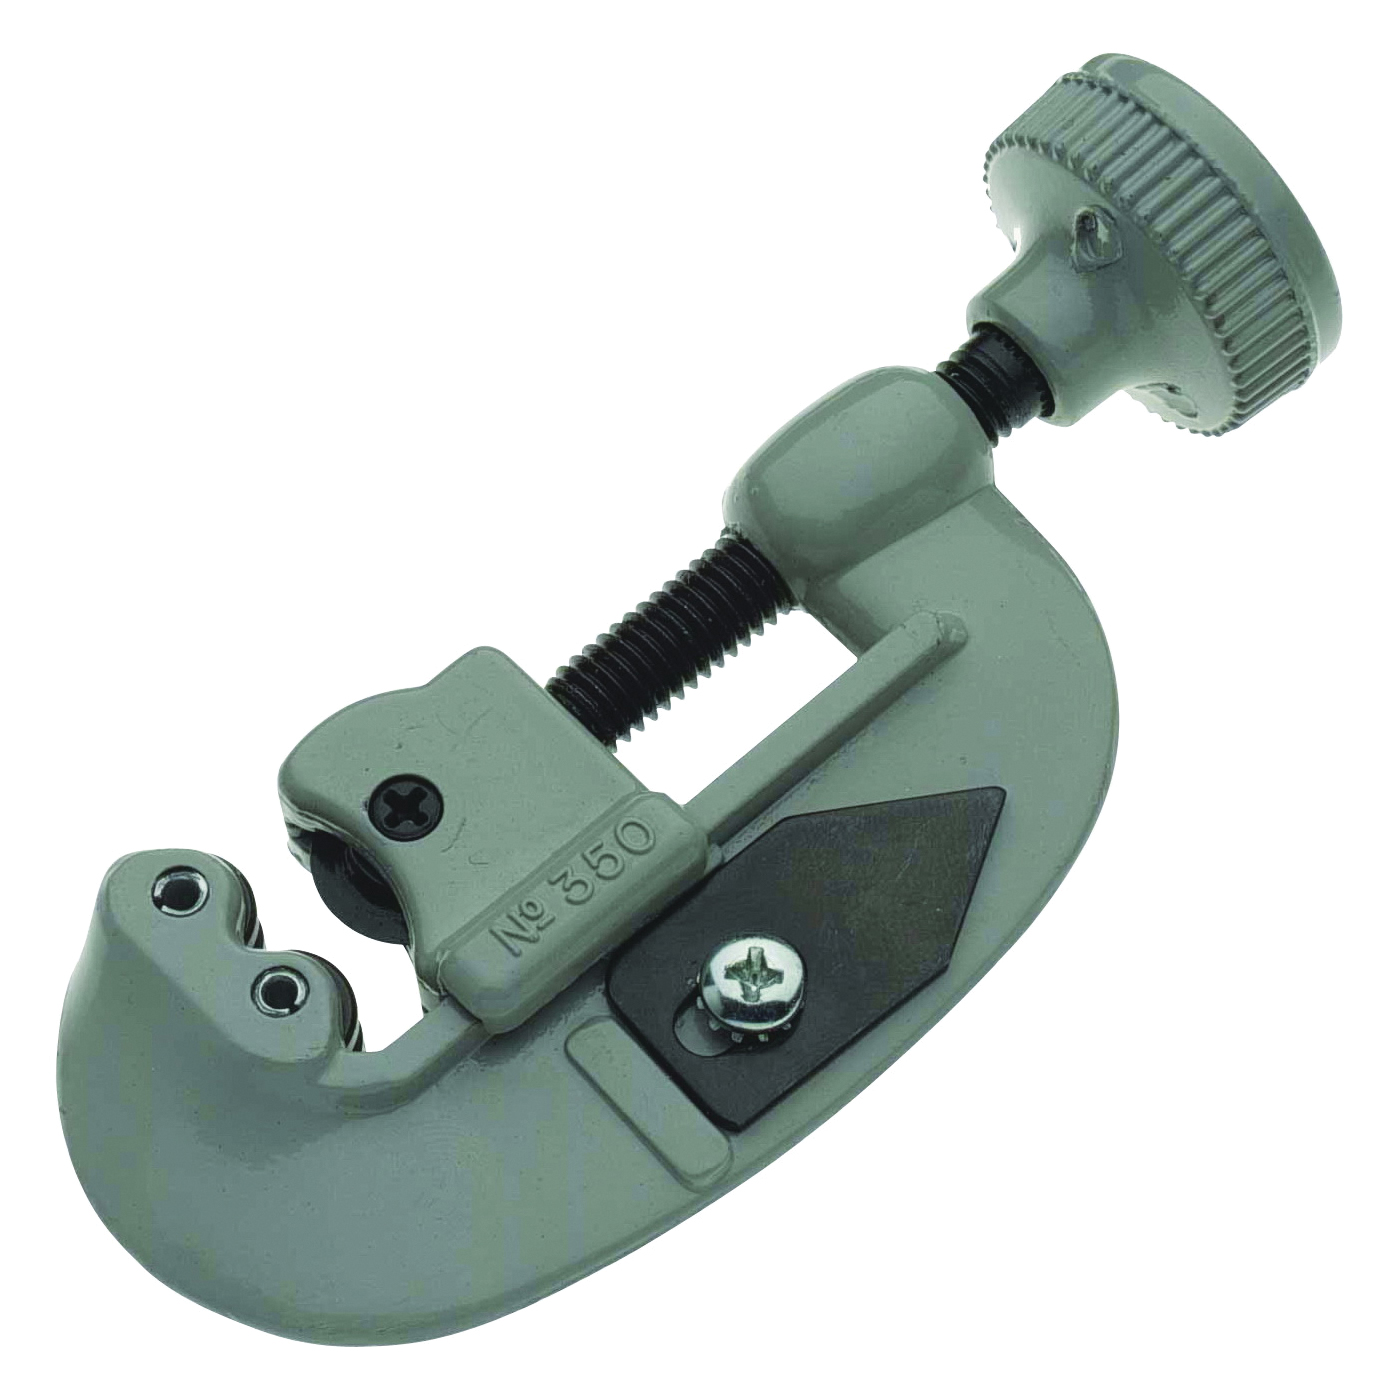 Picture of SUPERIOR TOOL 35236 Tube Cutter, 1-1/8 in Max Pipe/Tube Dia, 1/8 in Mini Pipe/Tube Dia, Steel Blade